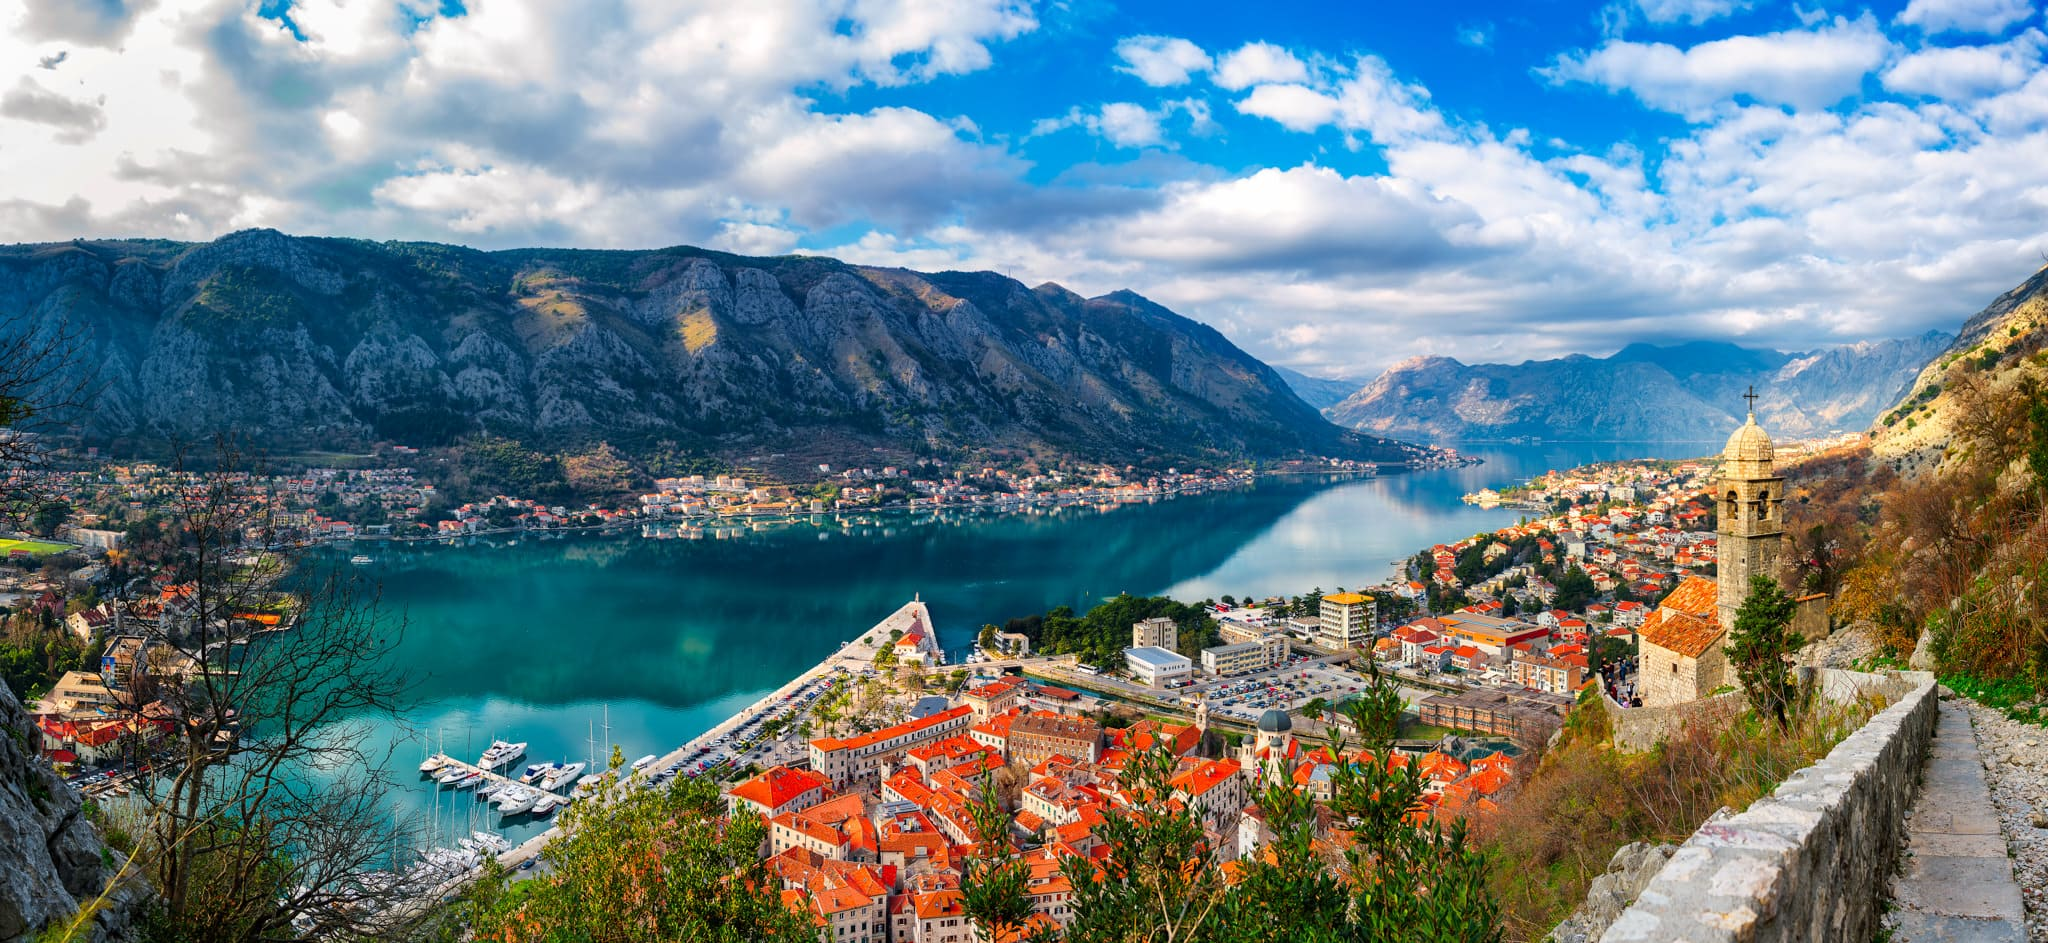 Kotor-Panorama-Daylight-Adriatic-Sea